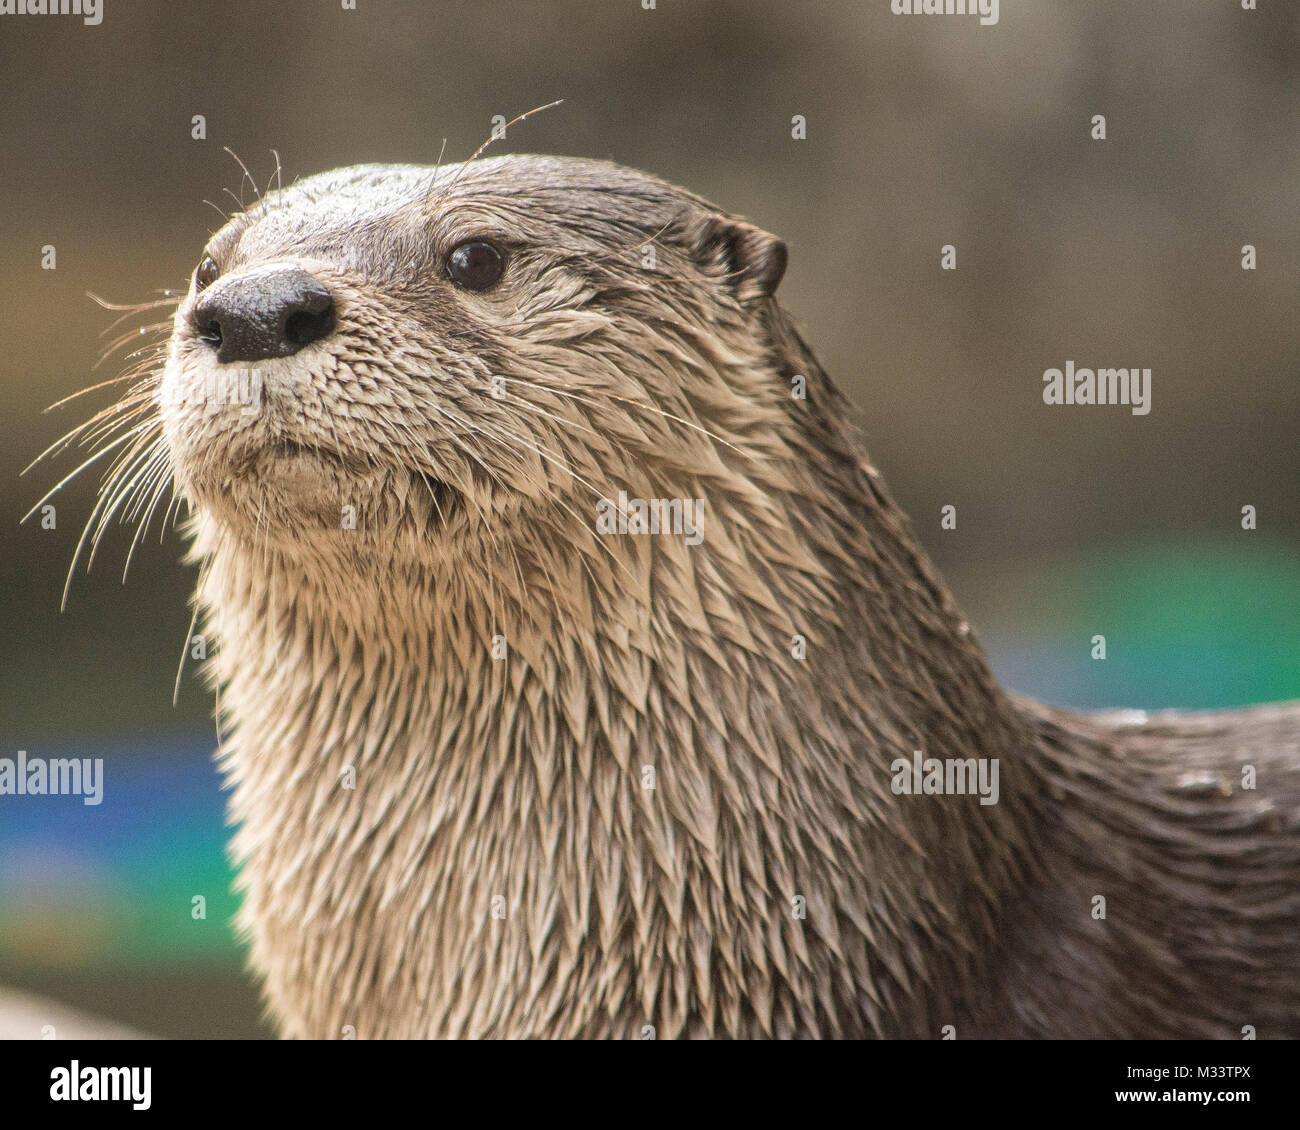 Cute otter isolated with plenty of room for copy. - Stock Image